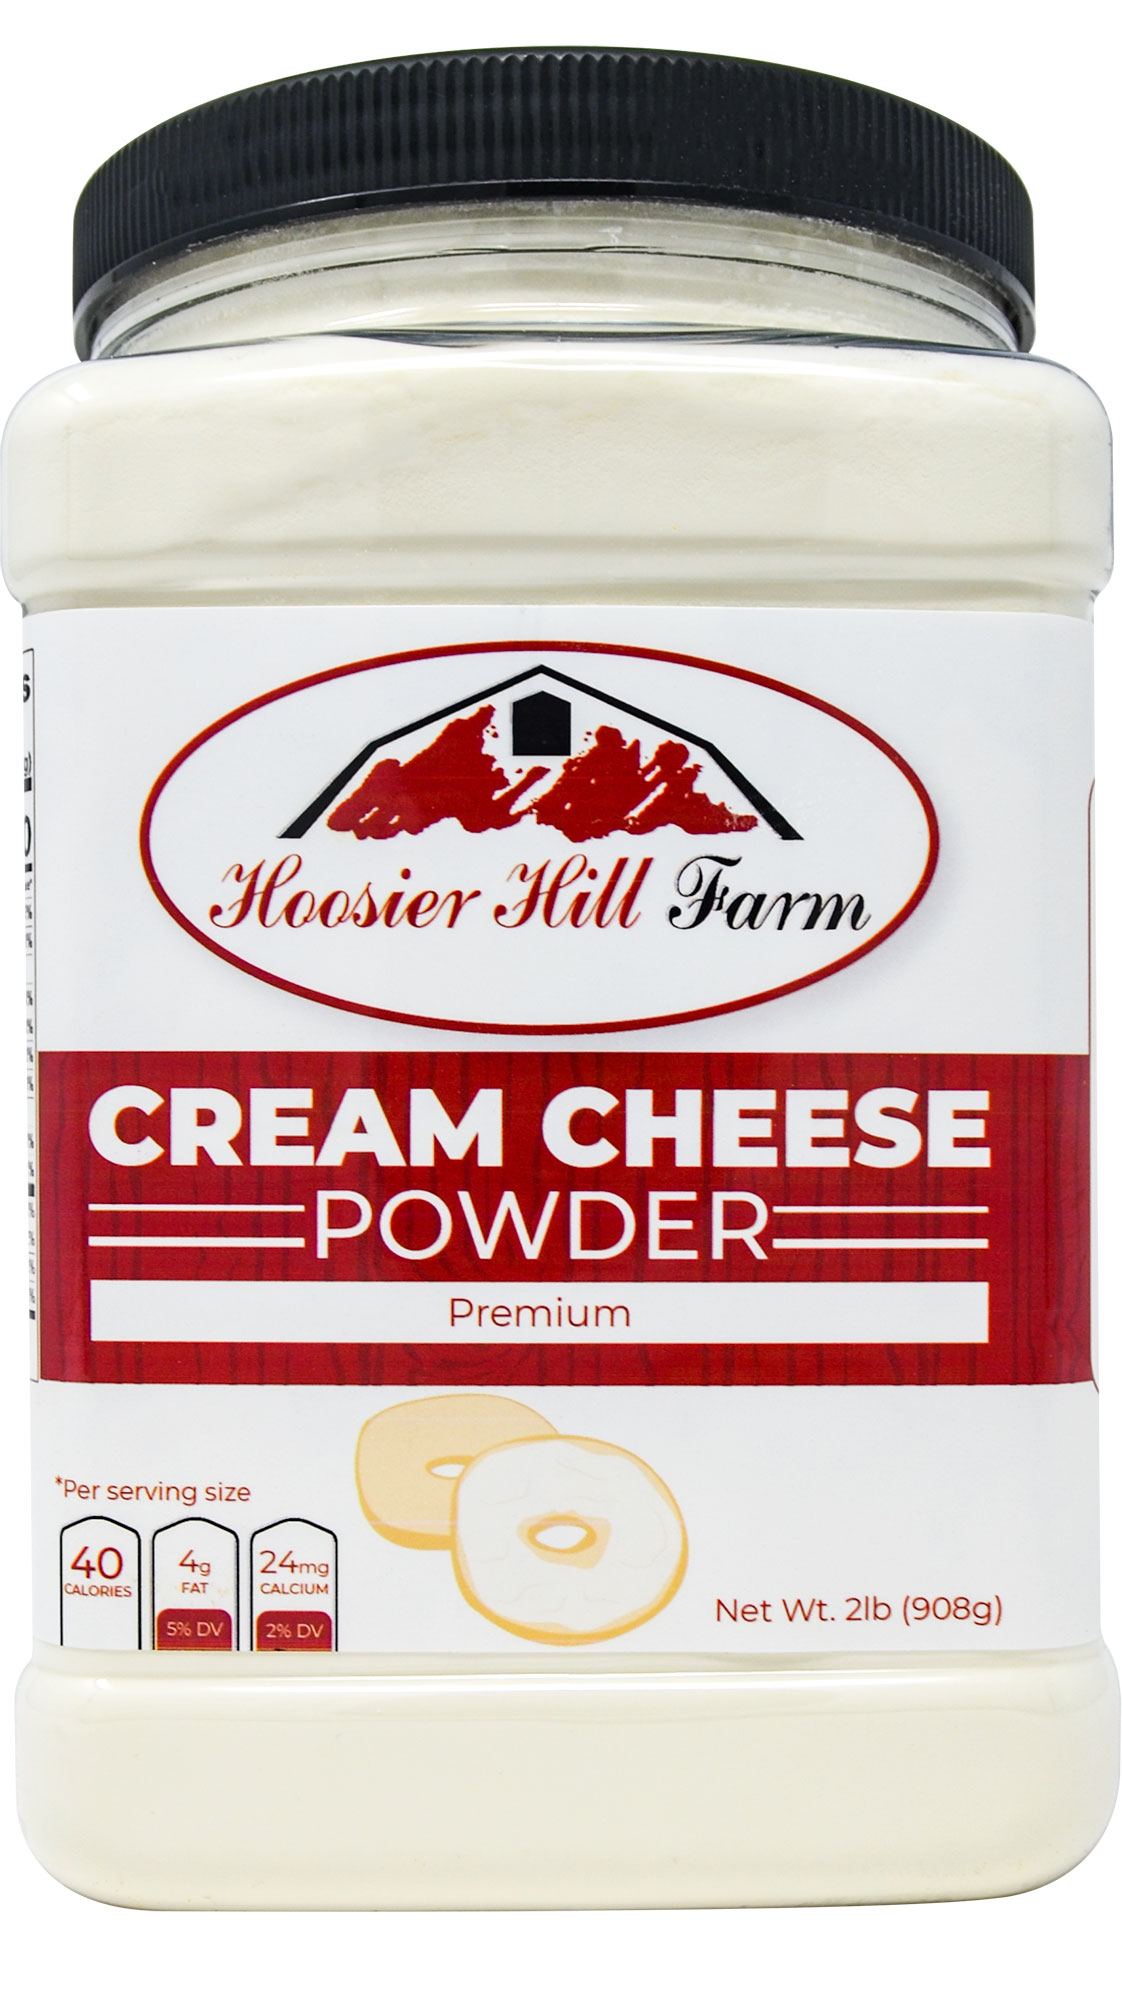 Cream Cheese powder, 2 Lb